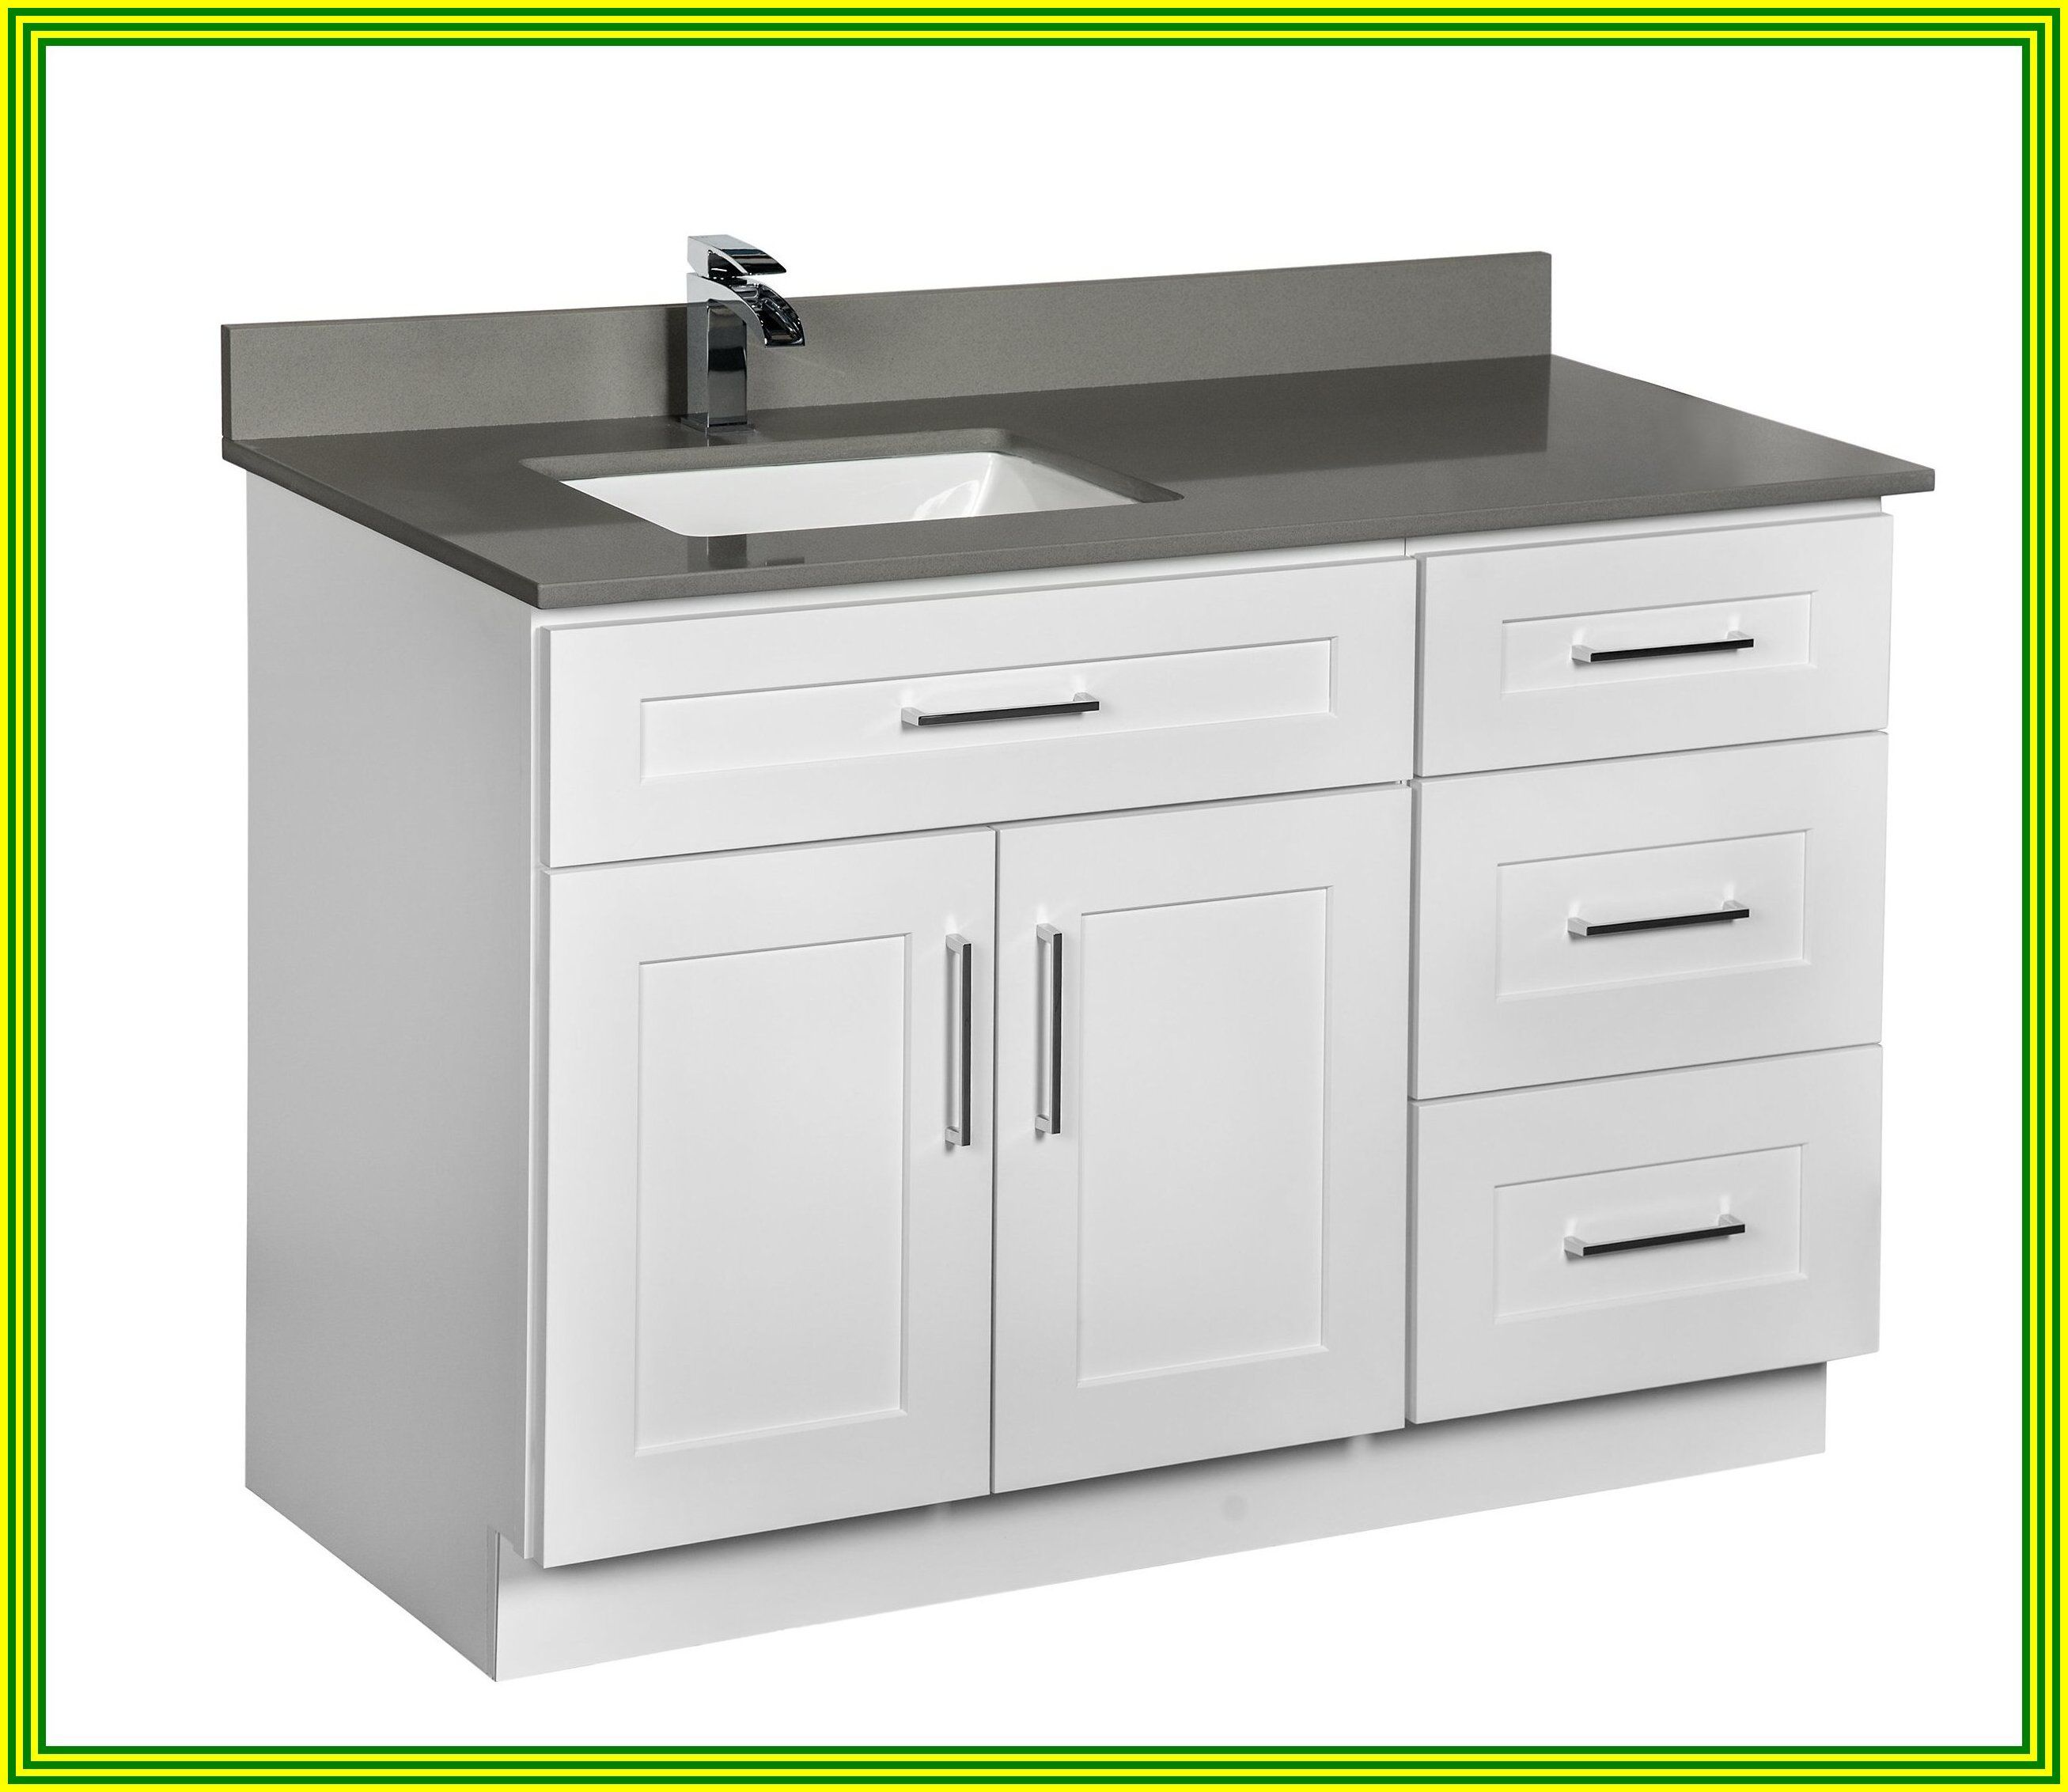 48 inch kitchen sink base with drawers48 inch